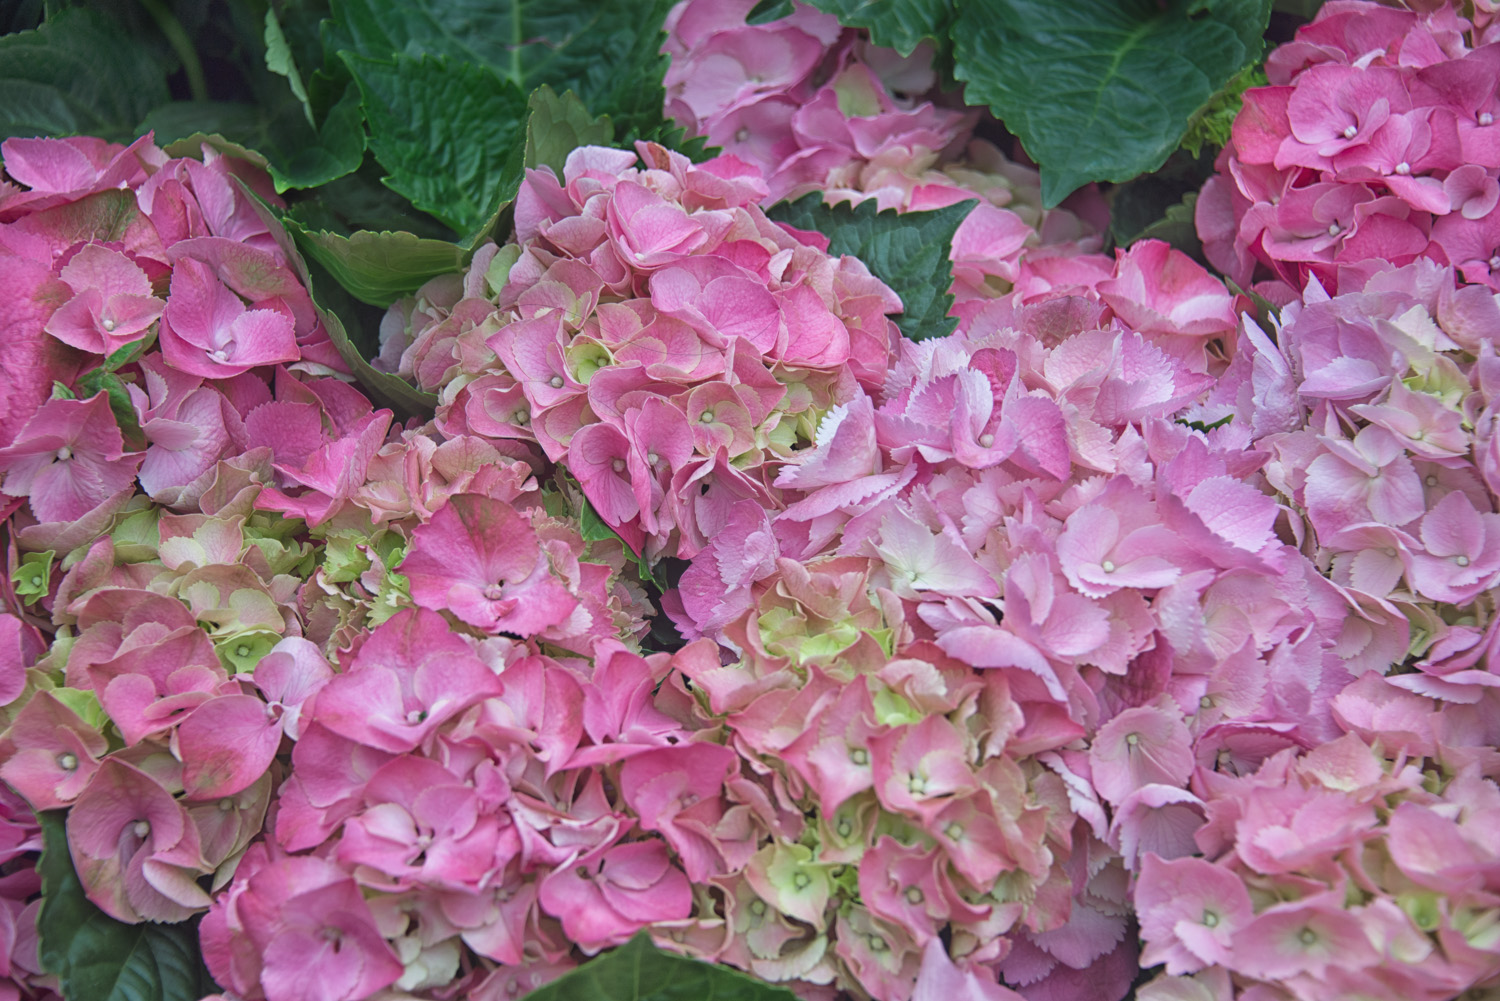 Bunches of Pink Hydrangea